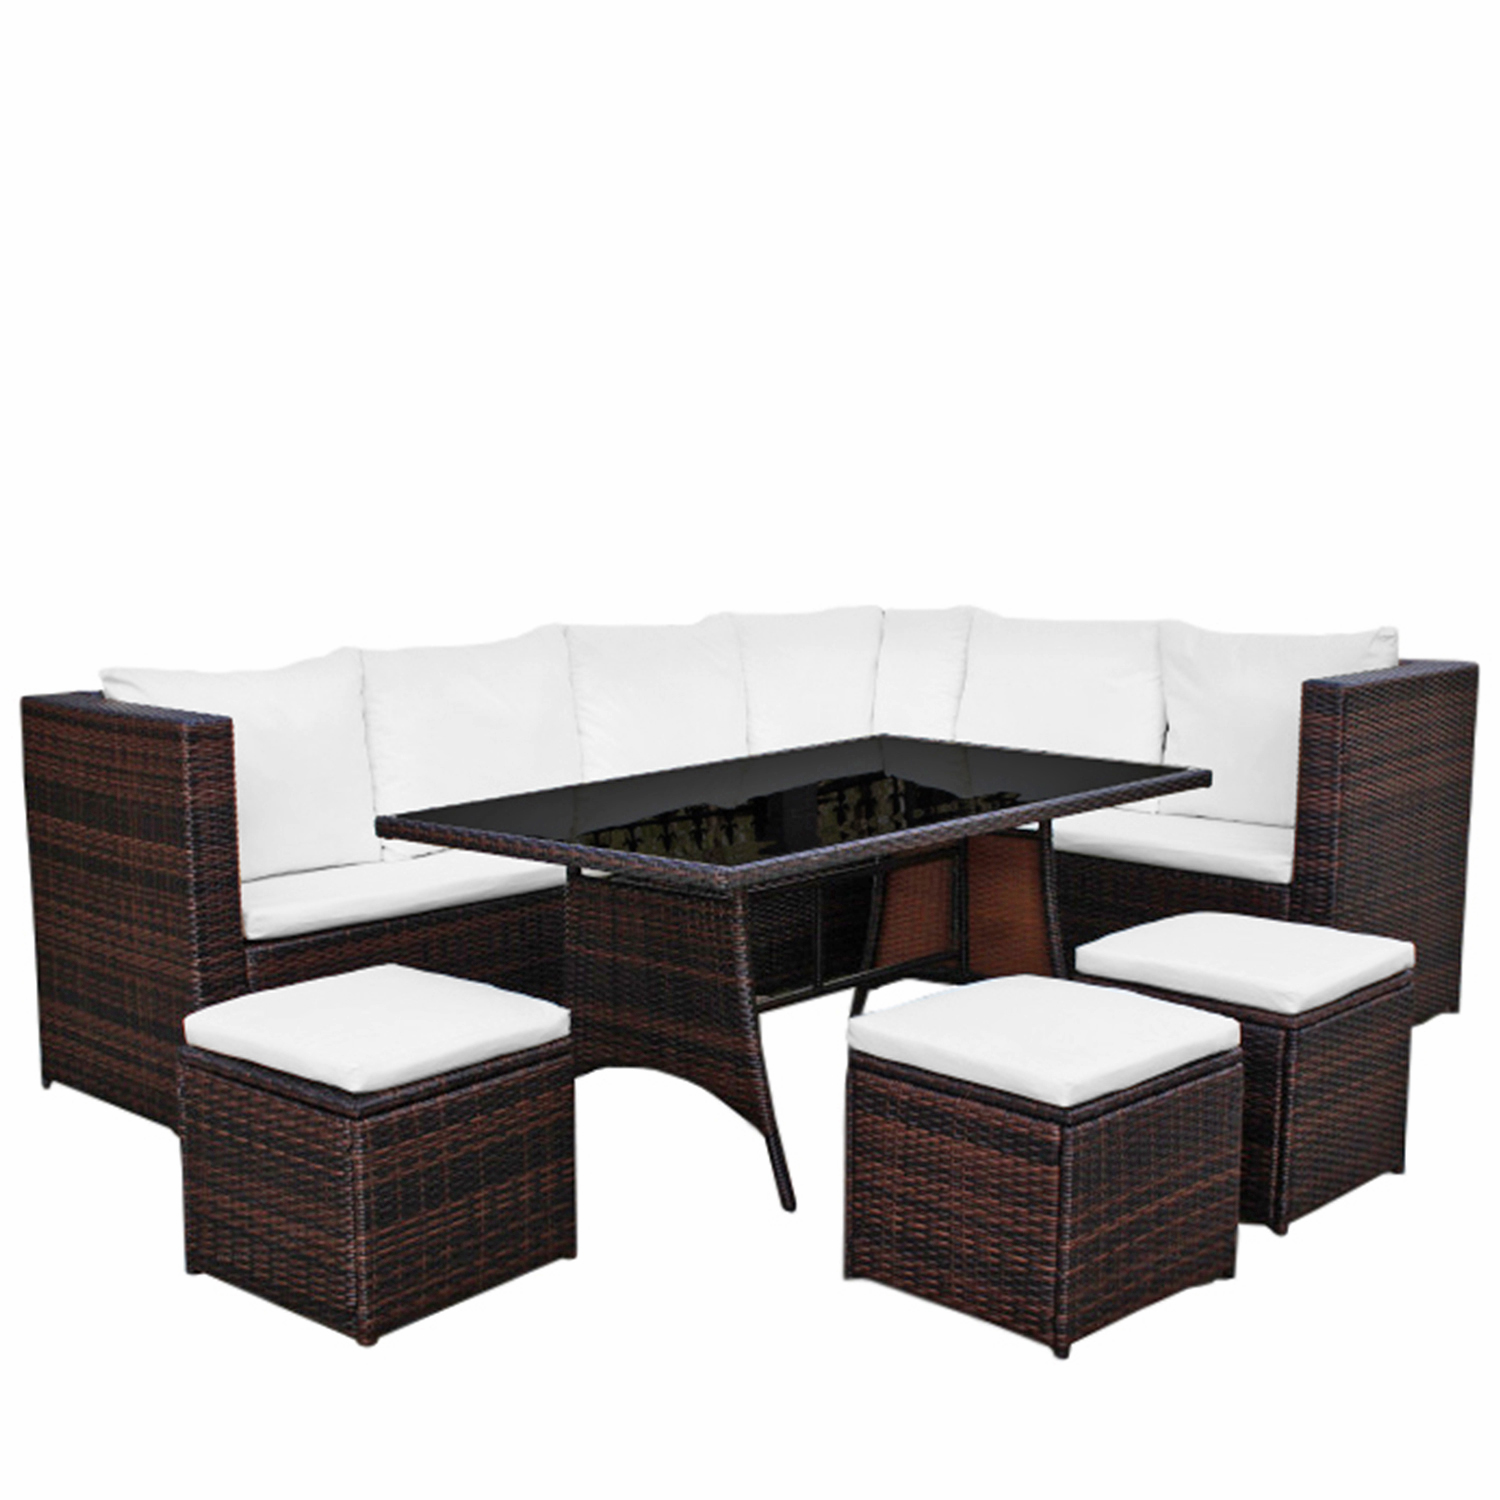 gartenm bel 8er rattan ecklounge g nstig kaufen asviva. Black Bedroom Furniture Sets. Home Design Ideas